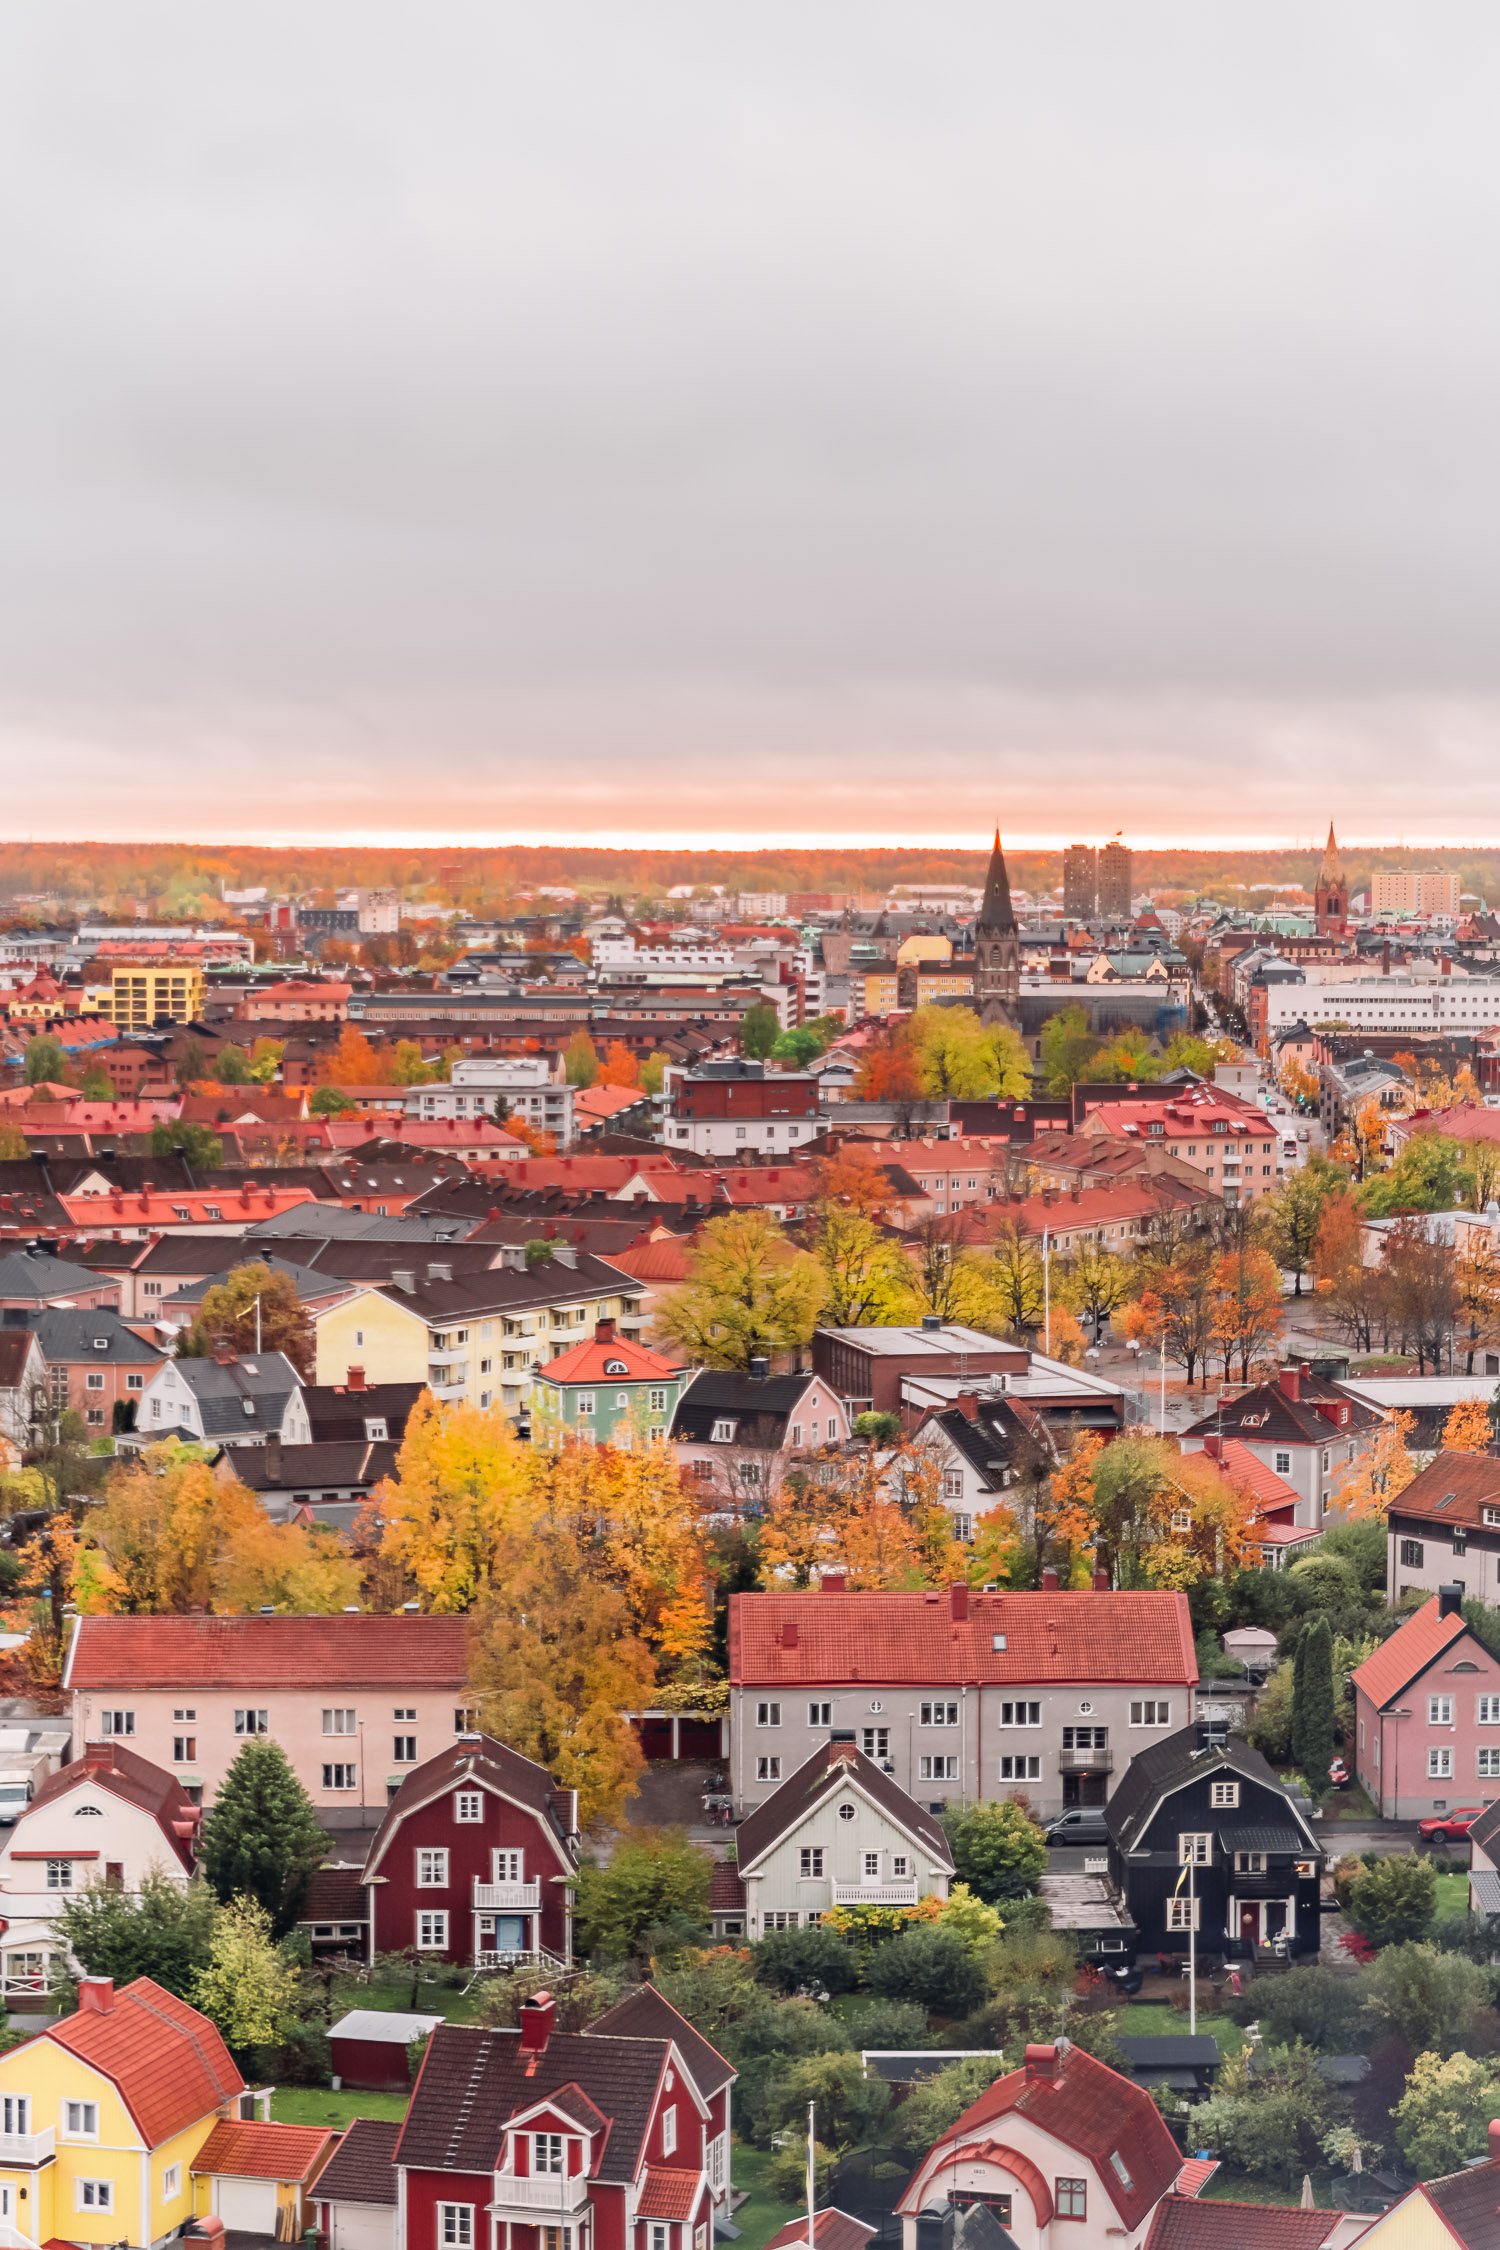 Beautiful views of Örebro from the iconic water tower Svampen